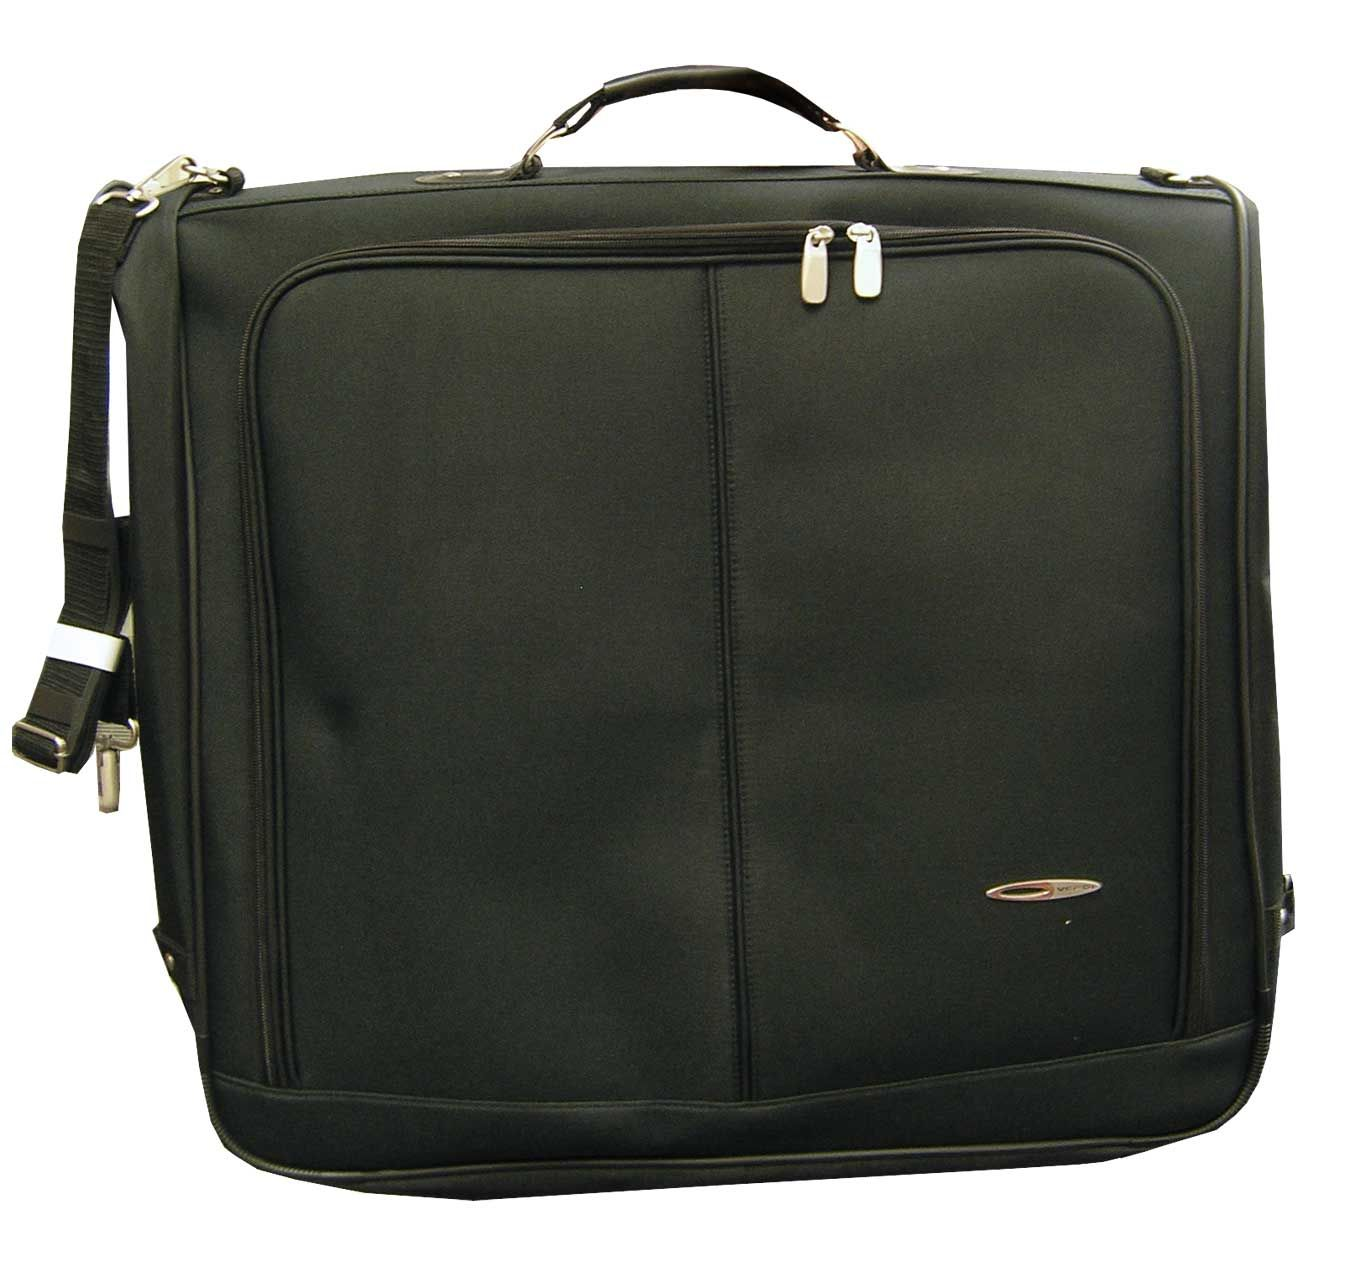 Travel Bag Kmart Verdi Garment Bag Go Places Wrinkle Free With Sears